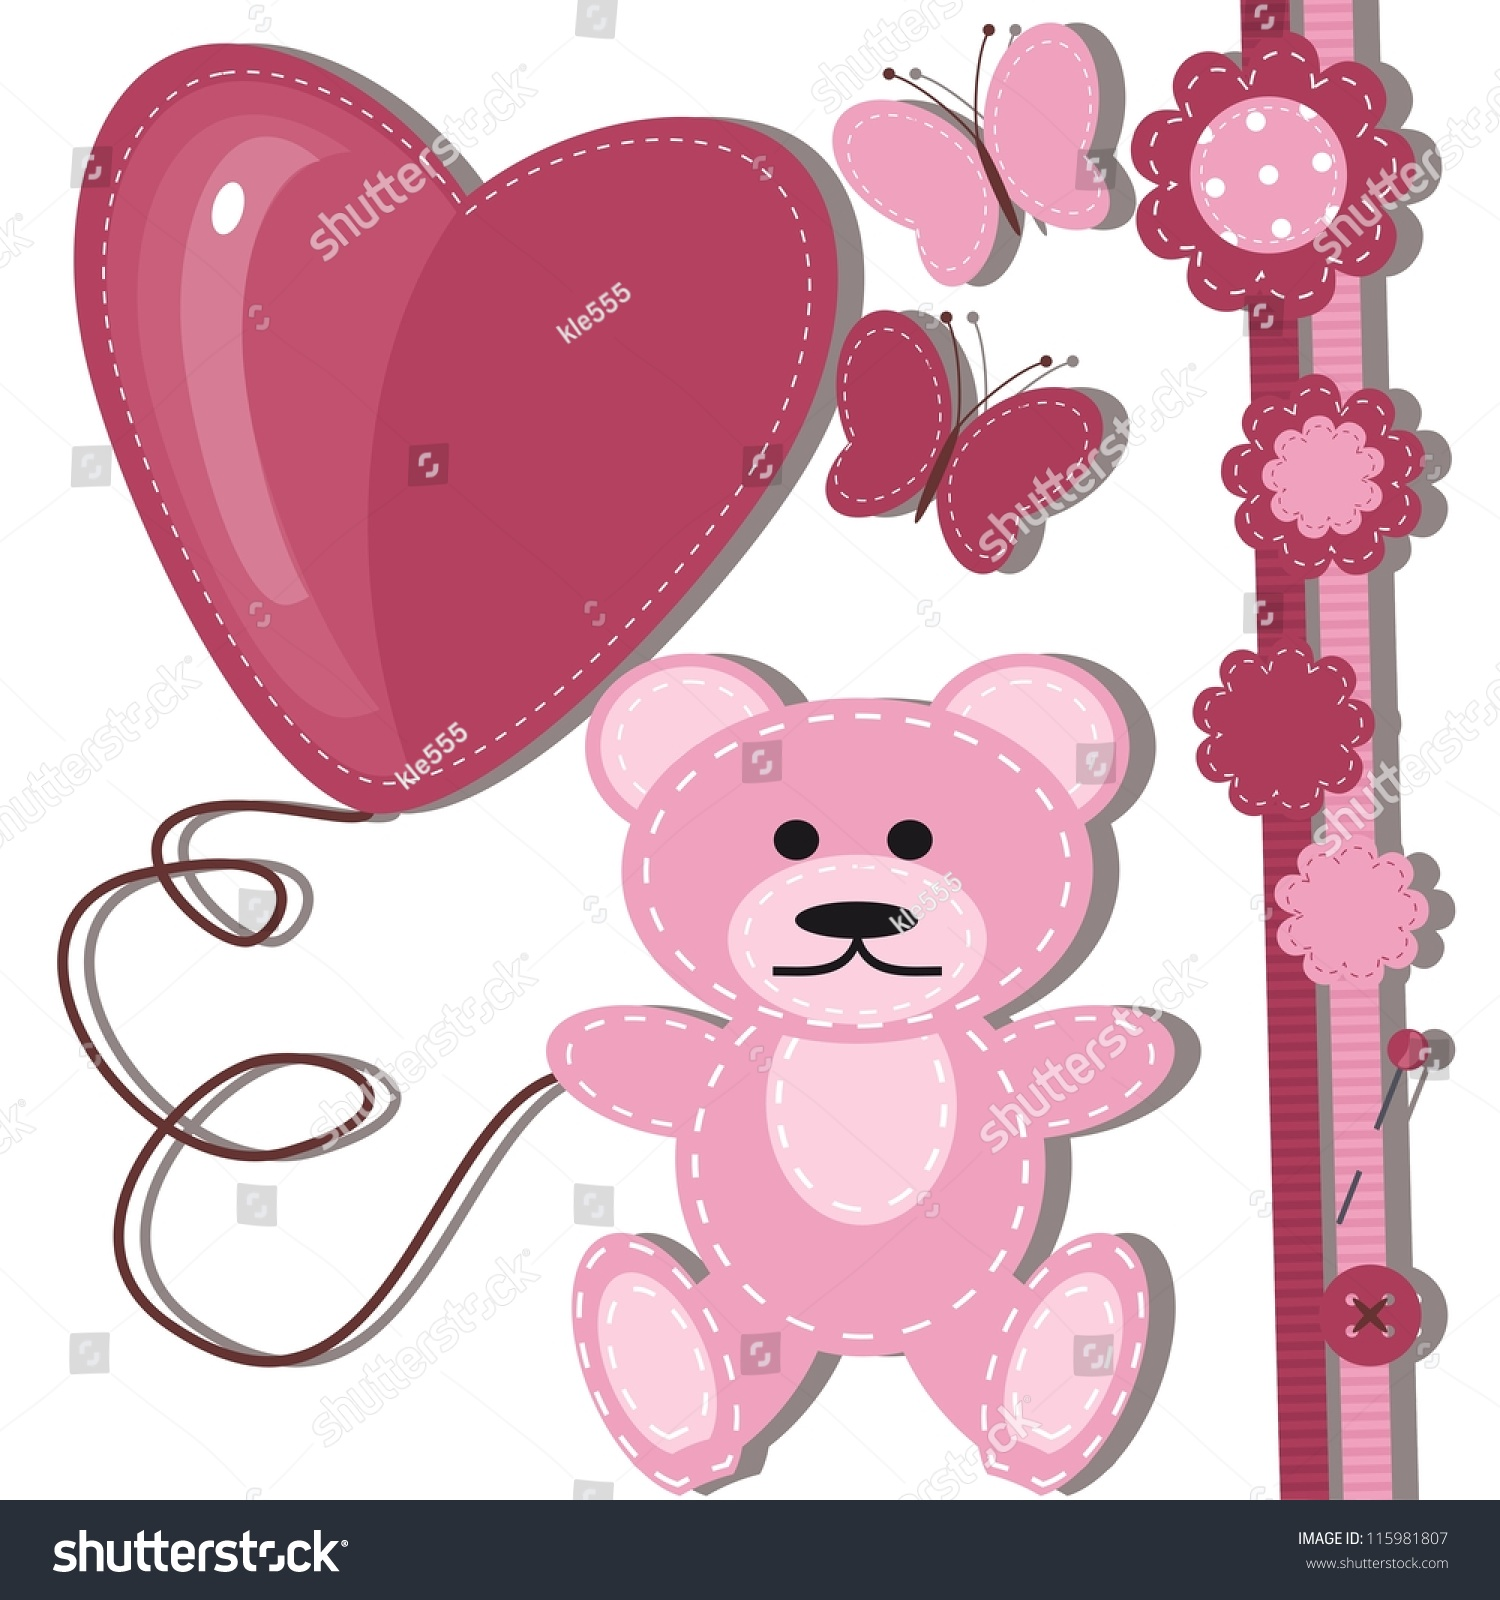 Greeting Card For Baby With Teddy Bear Ez Canvas